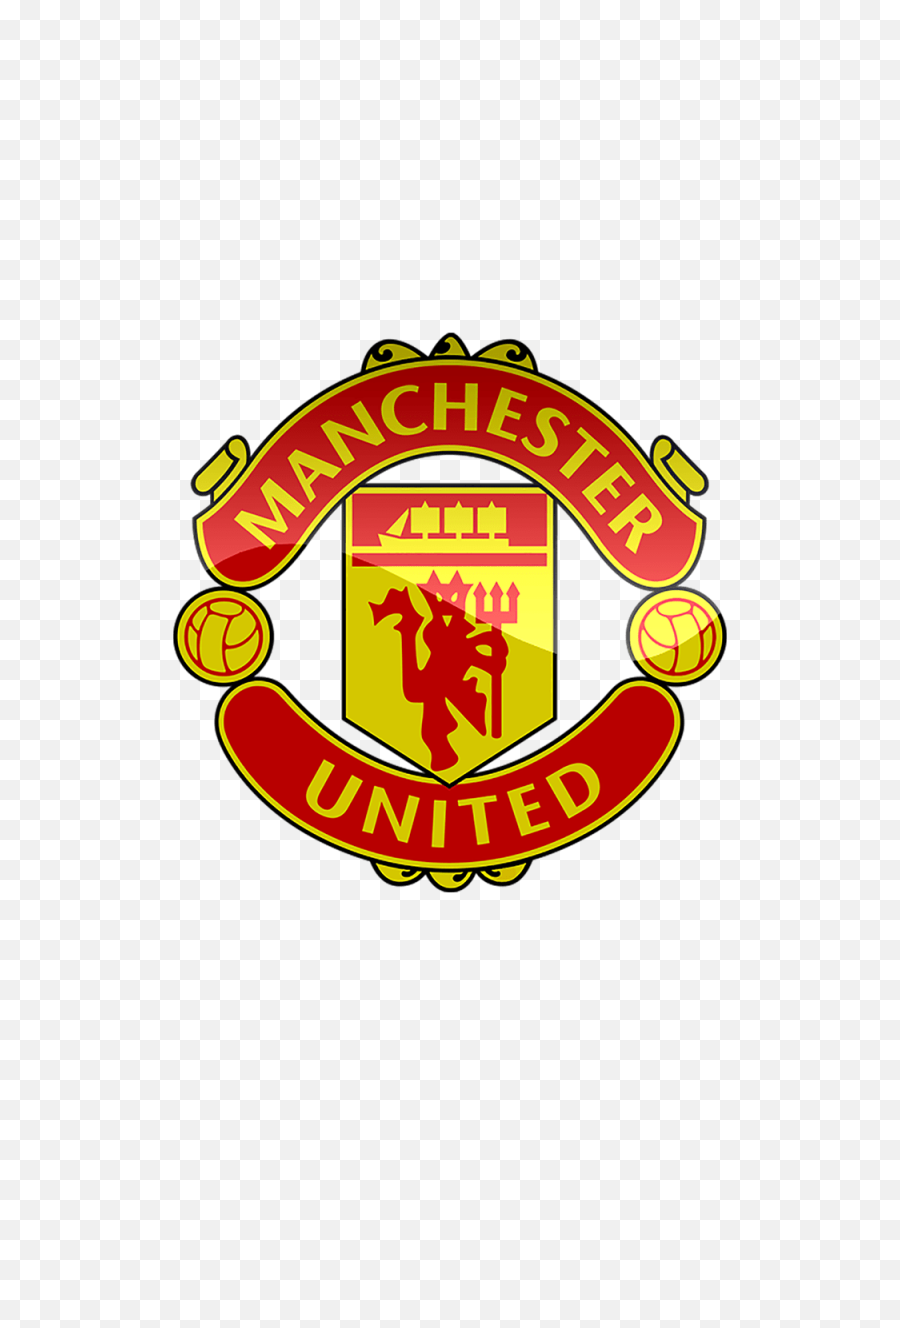 Dream Png And Vectors For Free Download Manchester United Logo 2019 Dream League Free Transparent Png Images Pngaaa Com